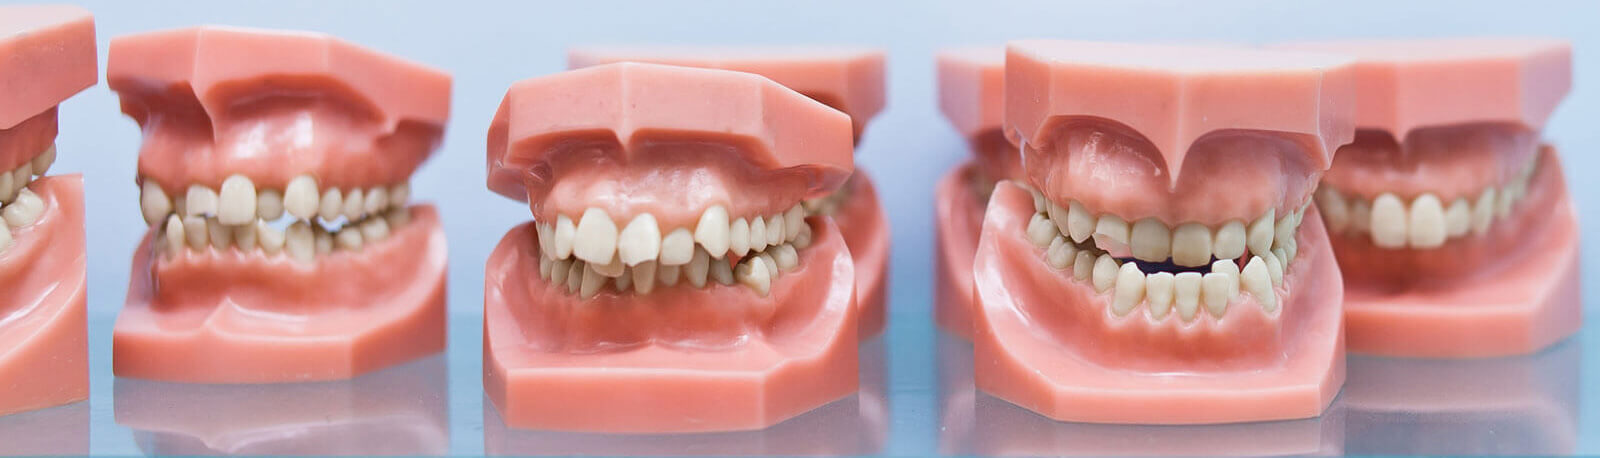 Row of educational jaw models with bad bite malocclusion in dentist office